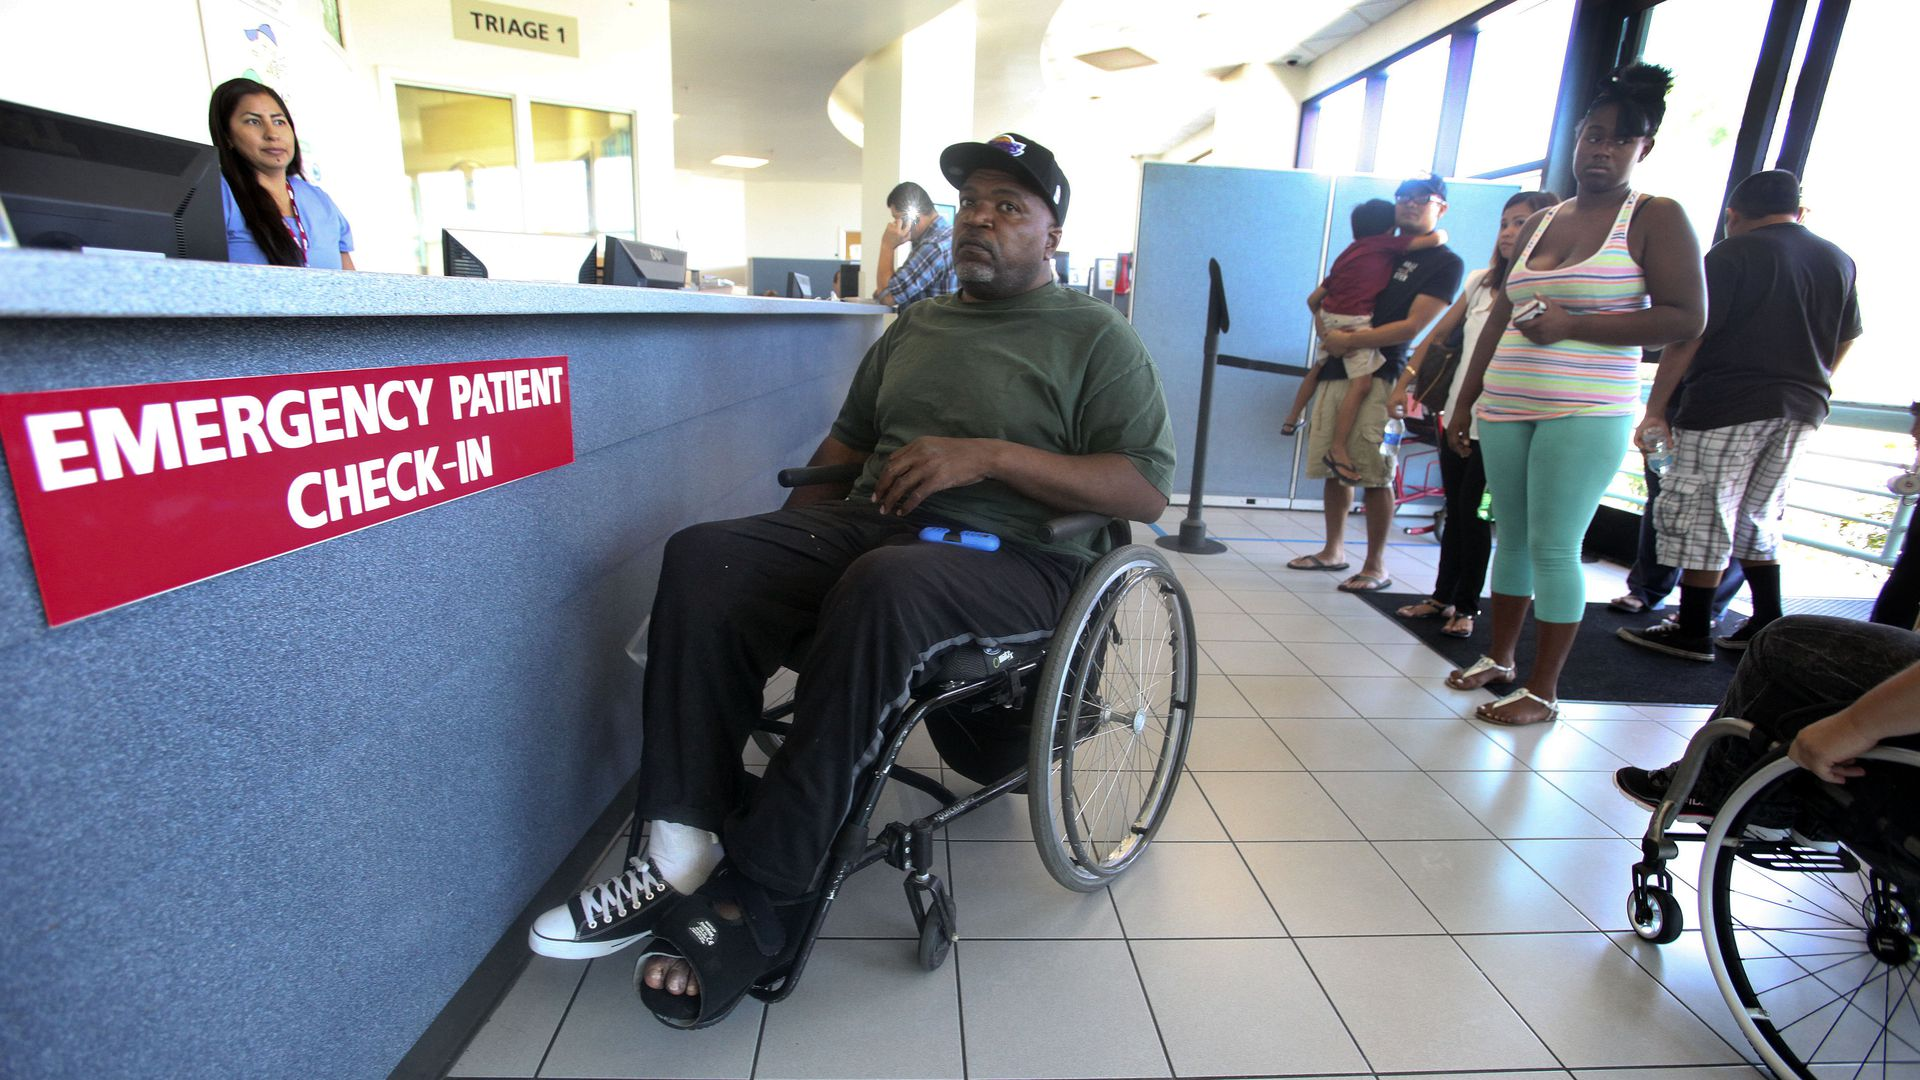 A man in a wheelchair checks in a hospital emergency room.